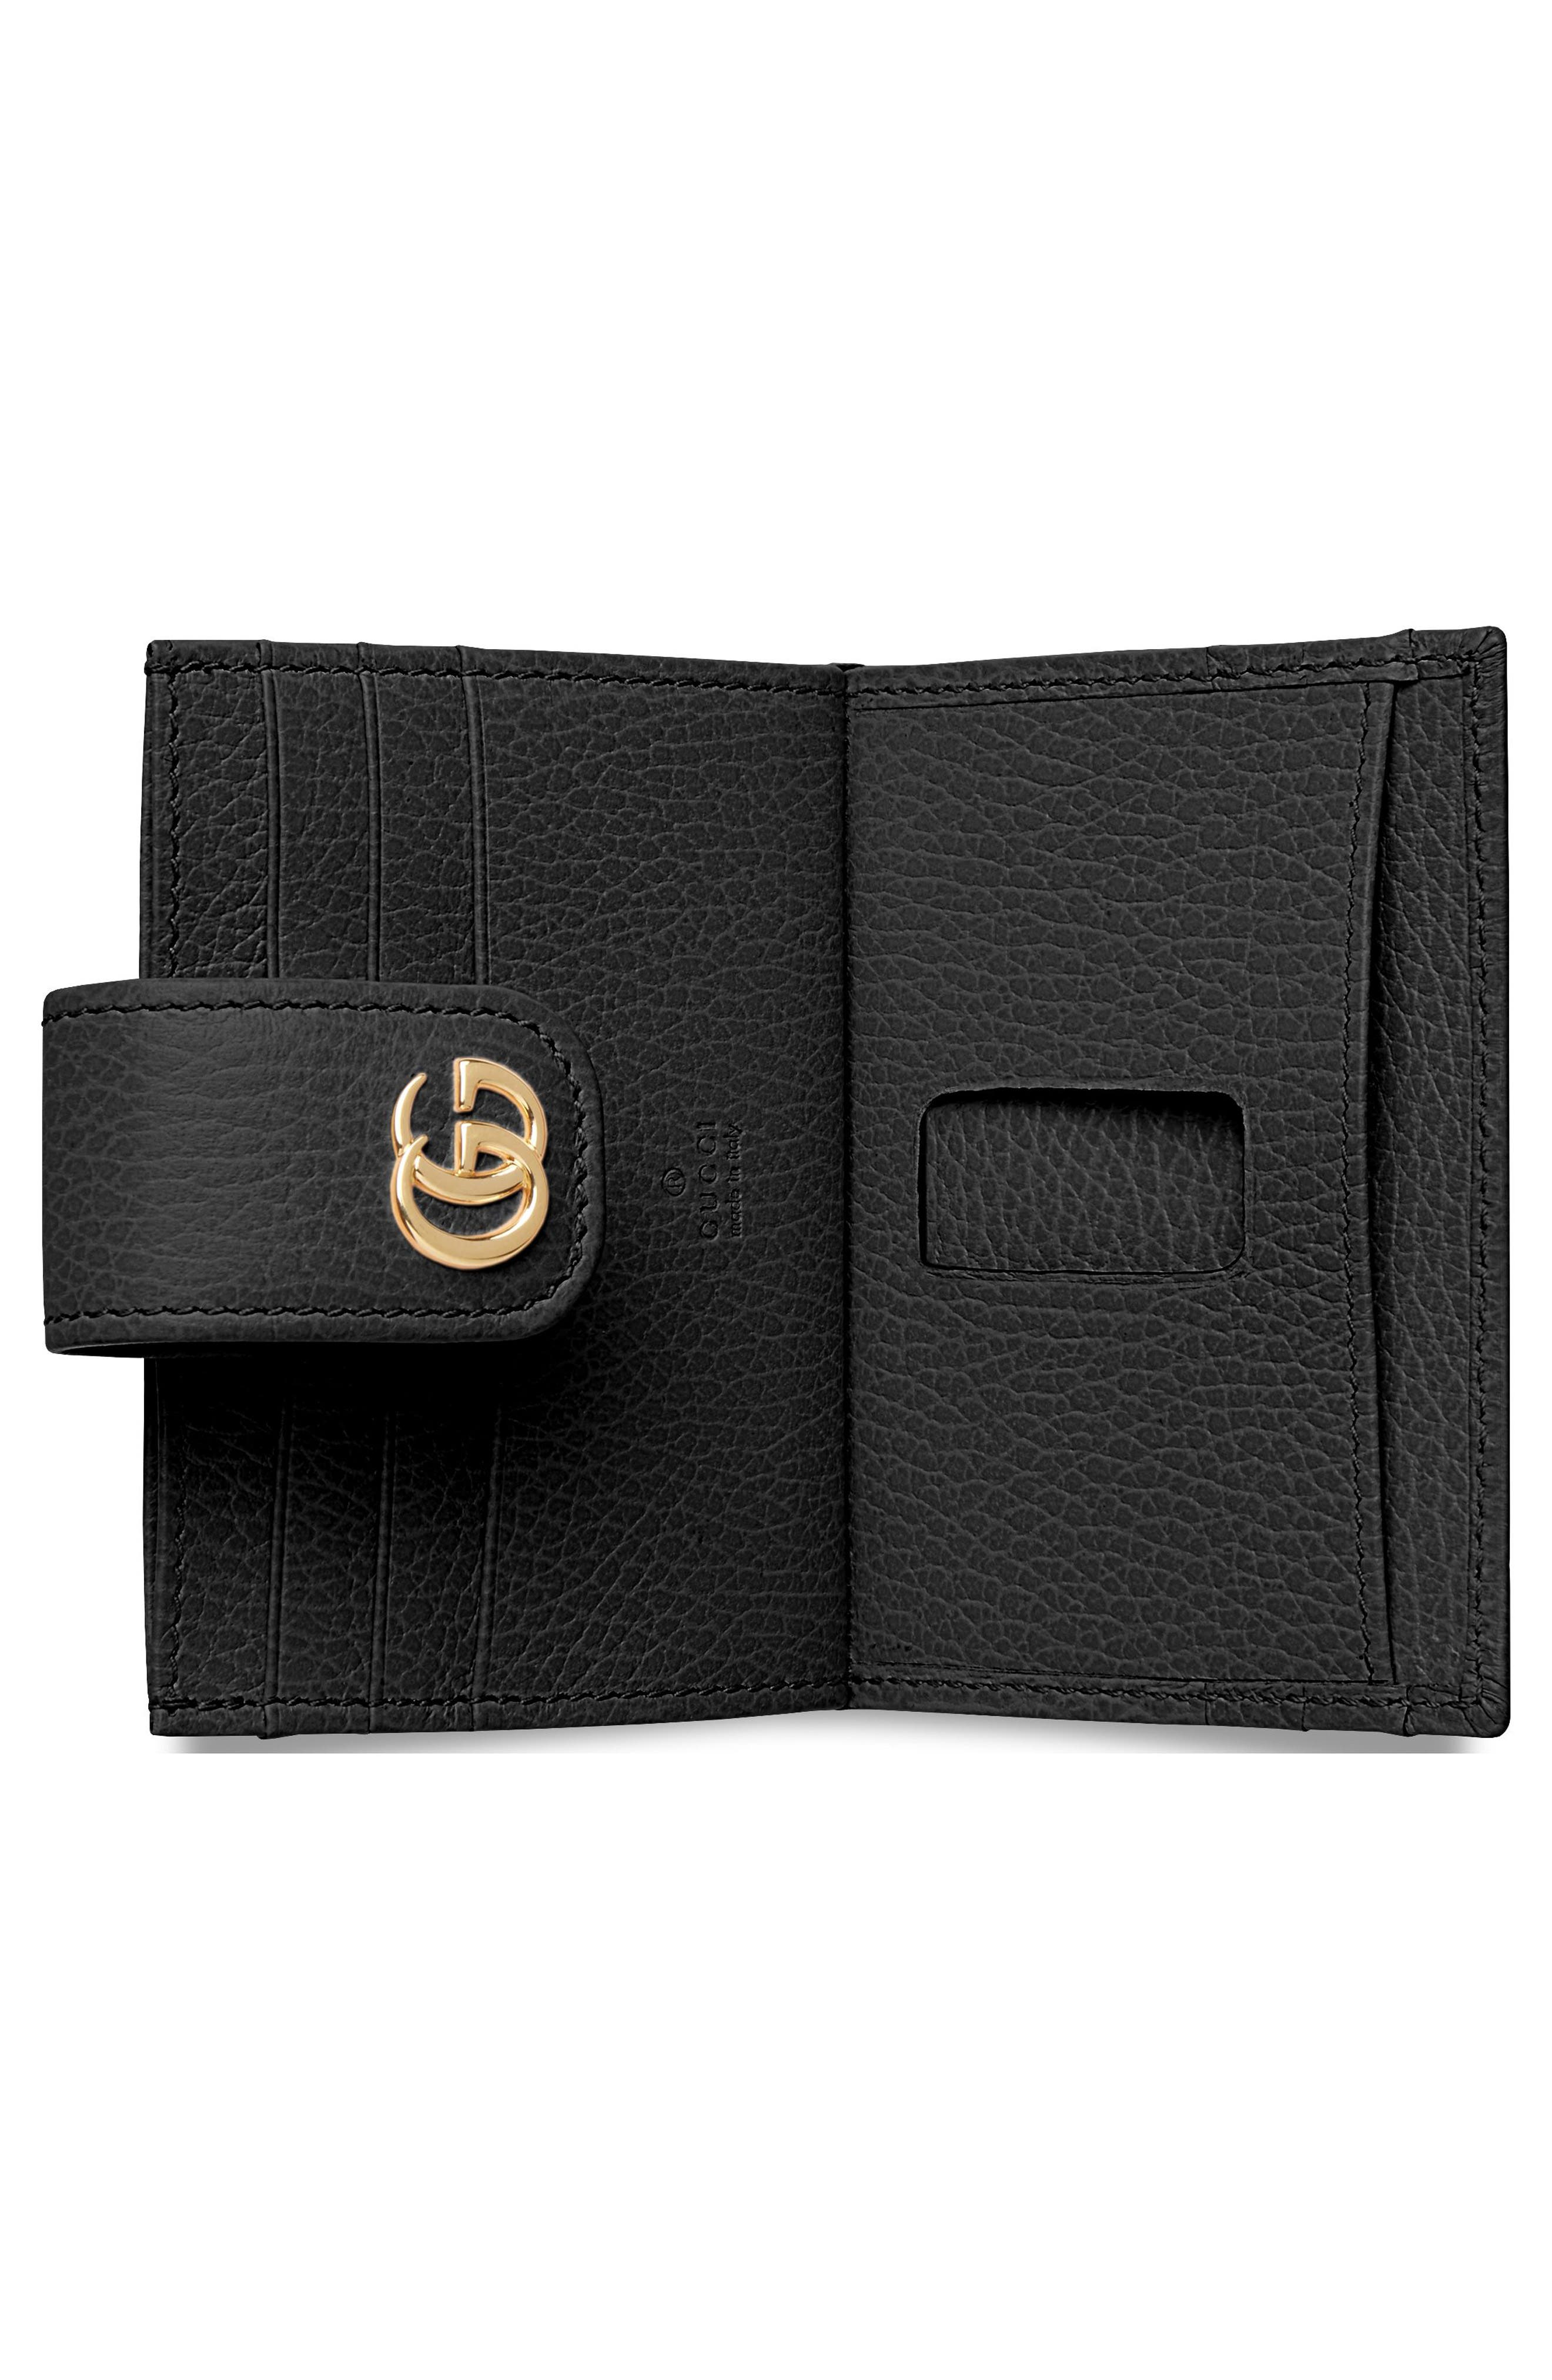 GG Marmont Leather Card Case,                             Alternate thumbnail 2, color,                             NERO